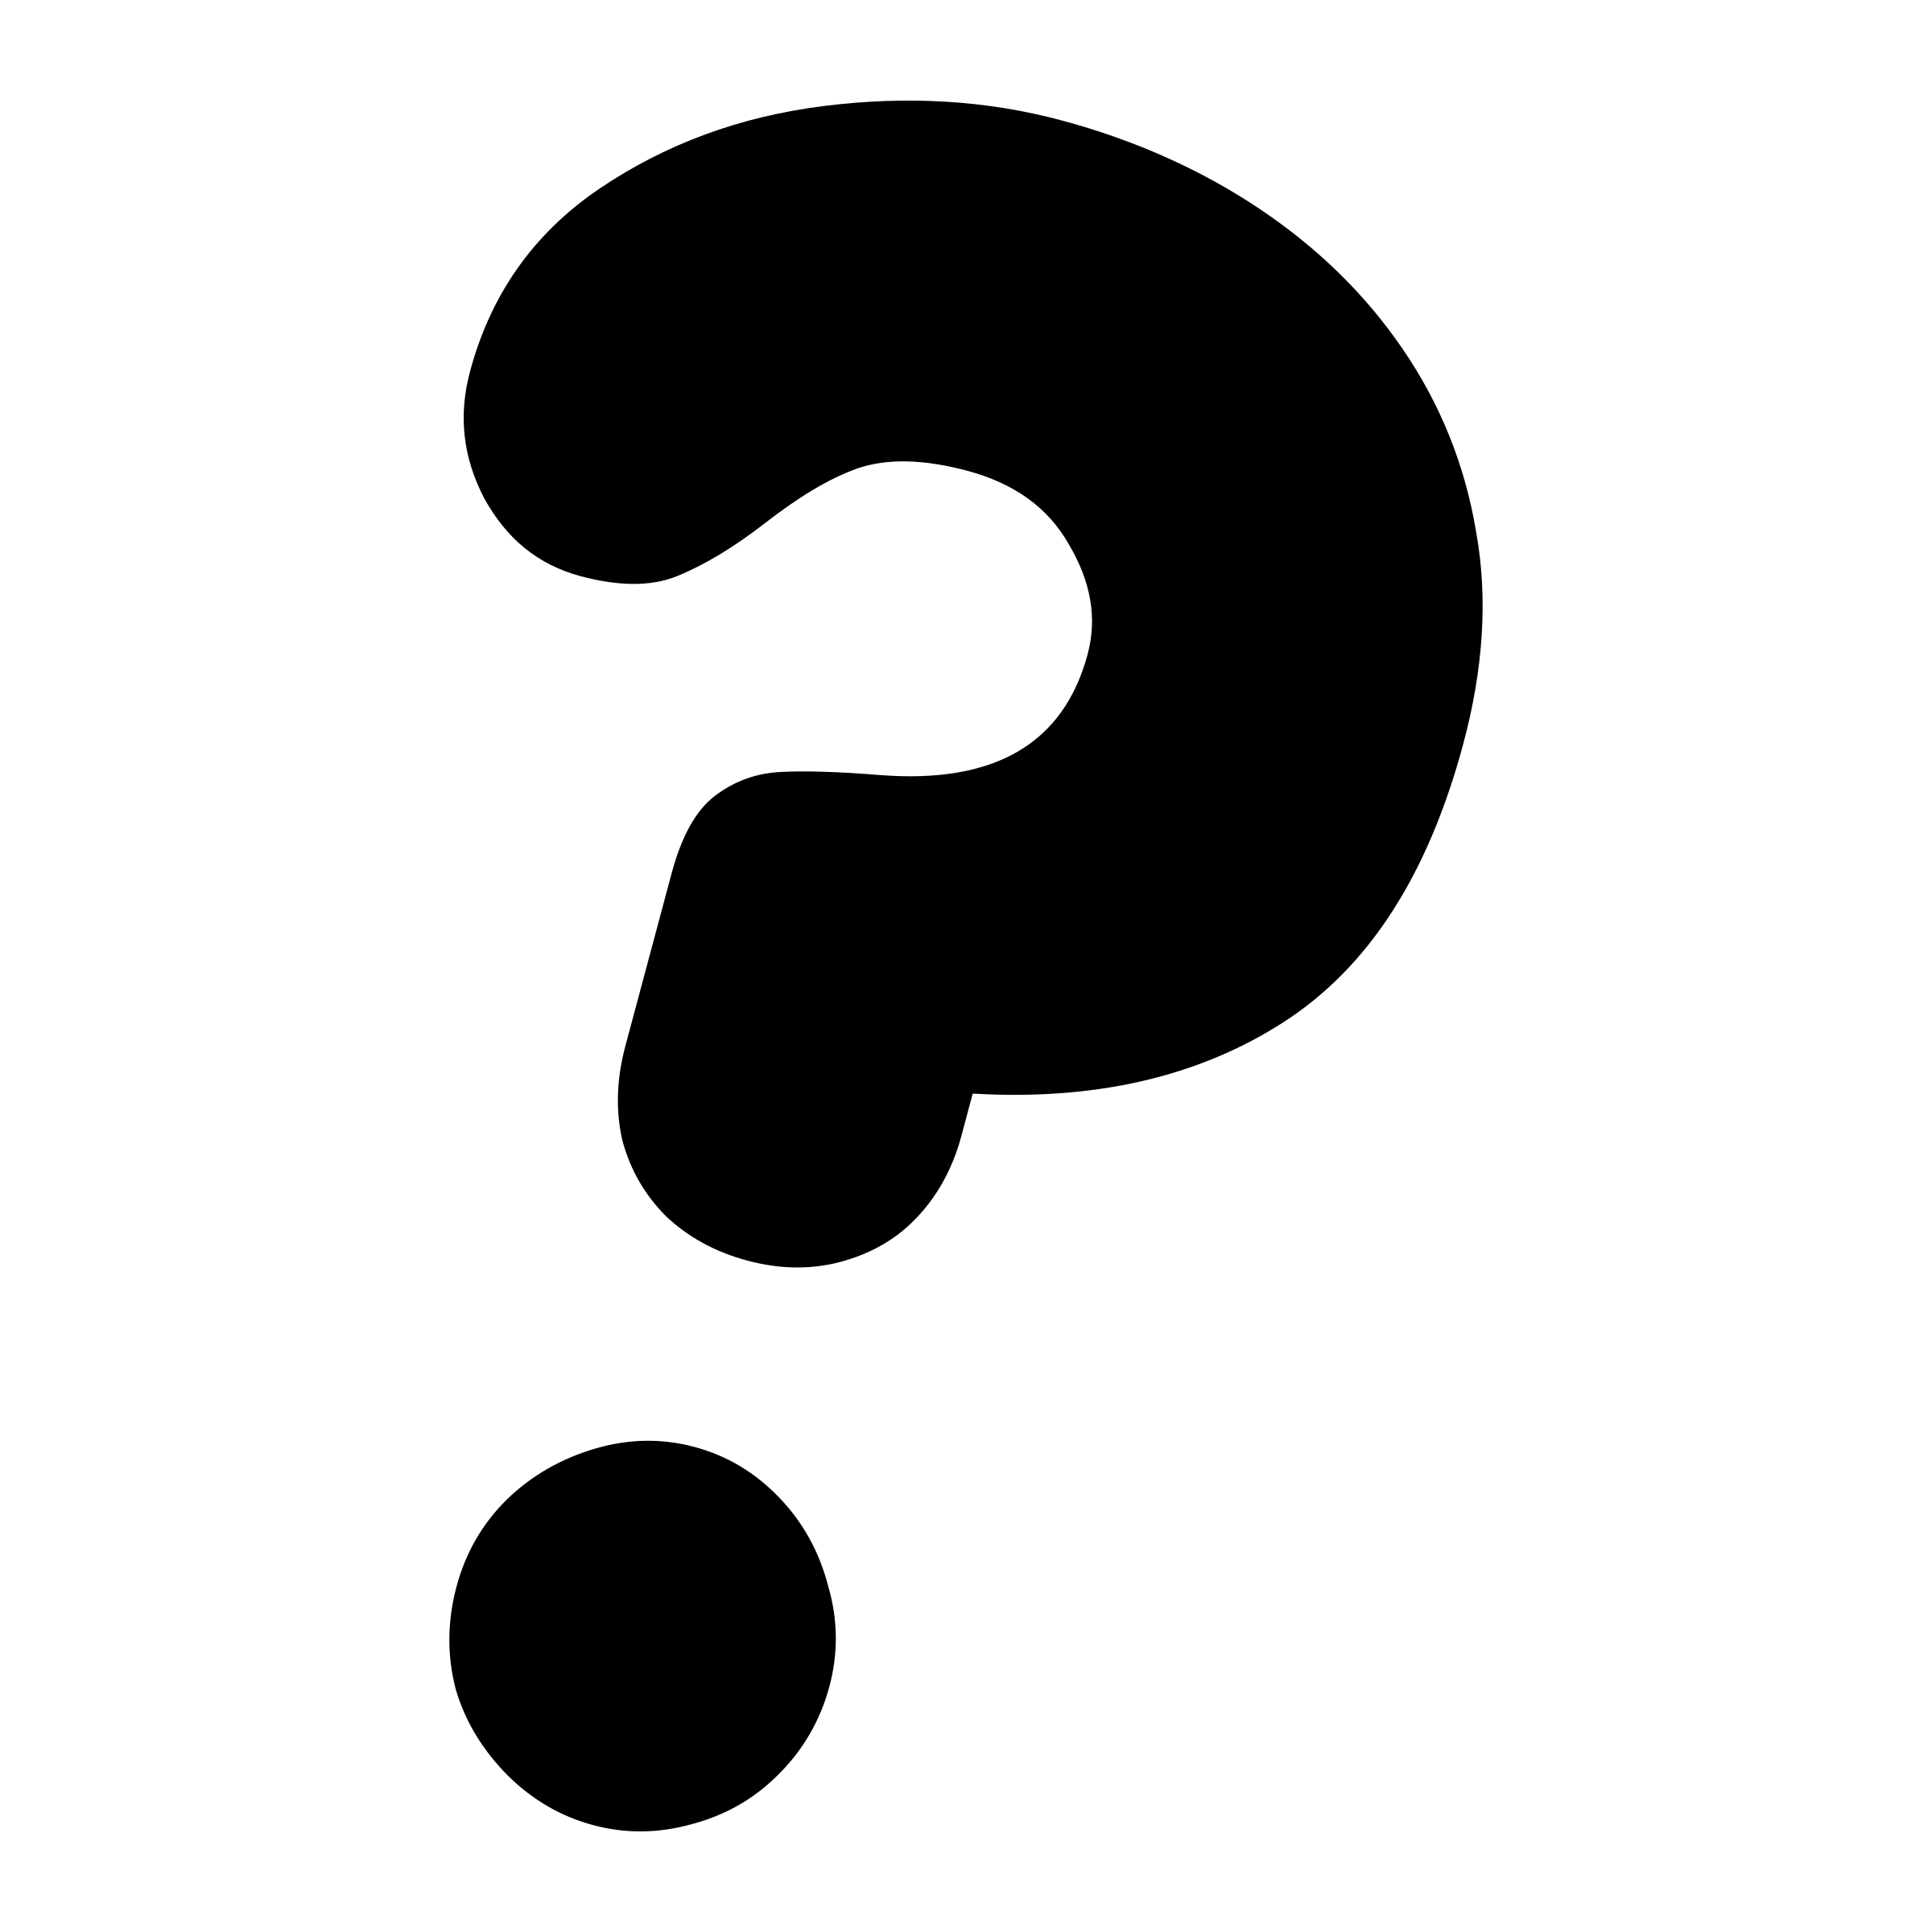 Question Mark Clipart u0026amp; Question Mark Clip Art Images - ClipartALL clipartall.com